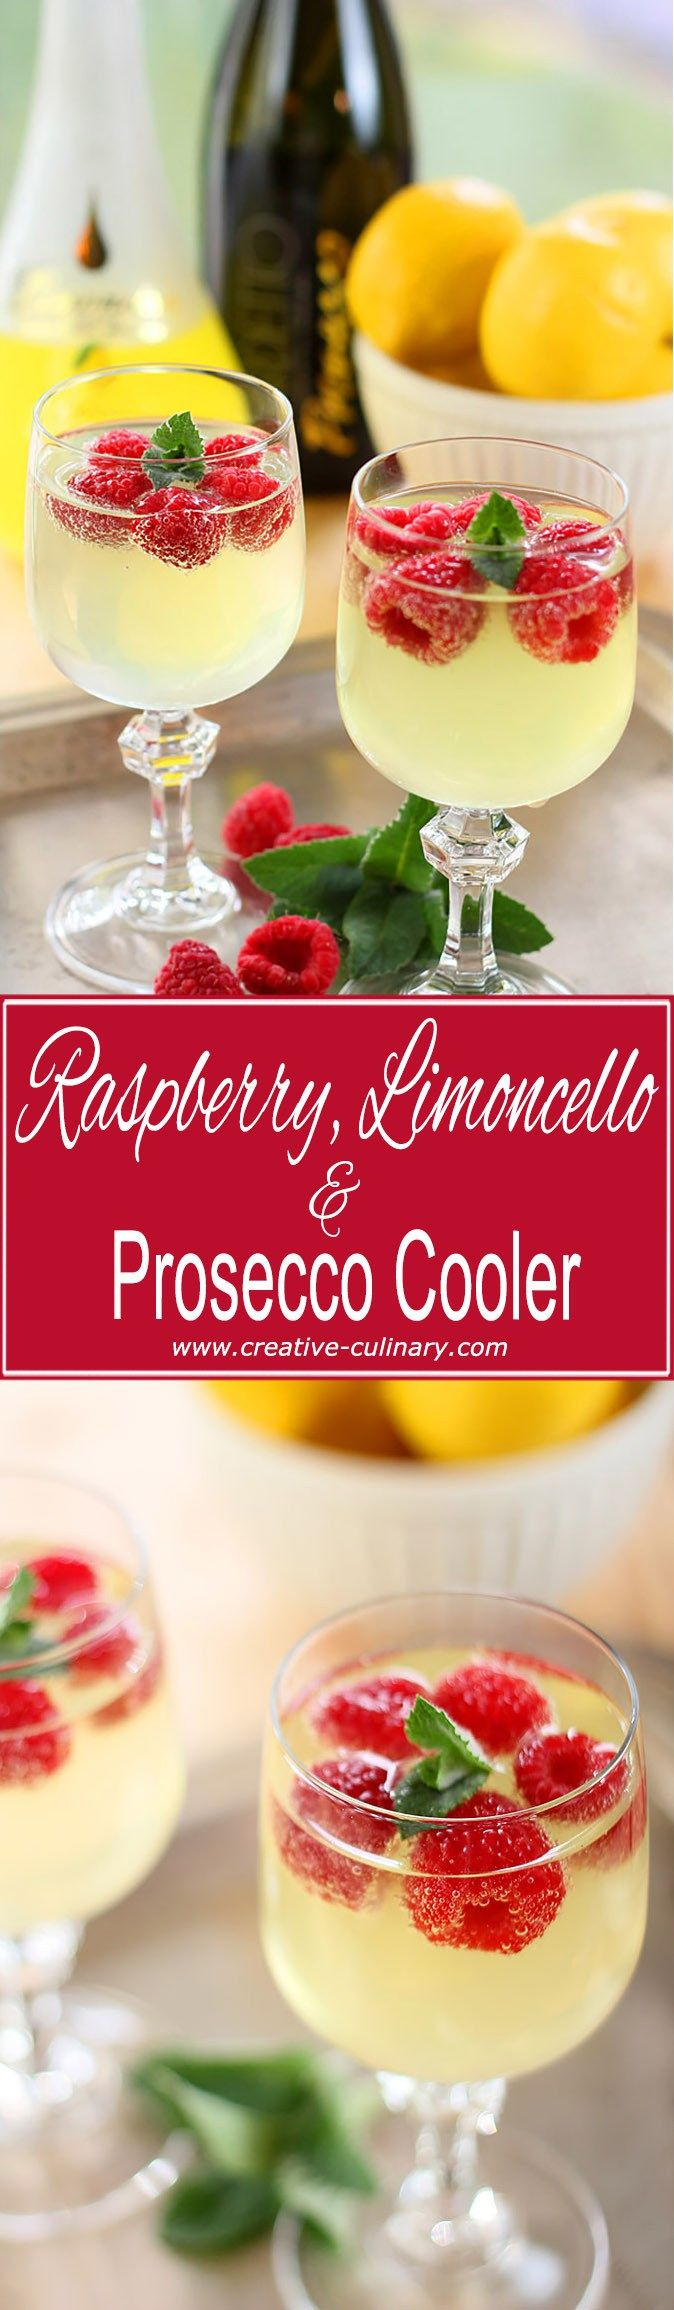 This Raspberry, Limoncello and Prosecco Cooler is a simple and lovely cocktail featuring Limoncello, frozen raspberries, and Italian sparkling wine.